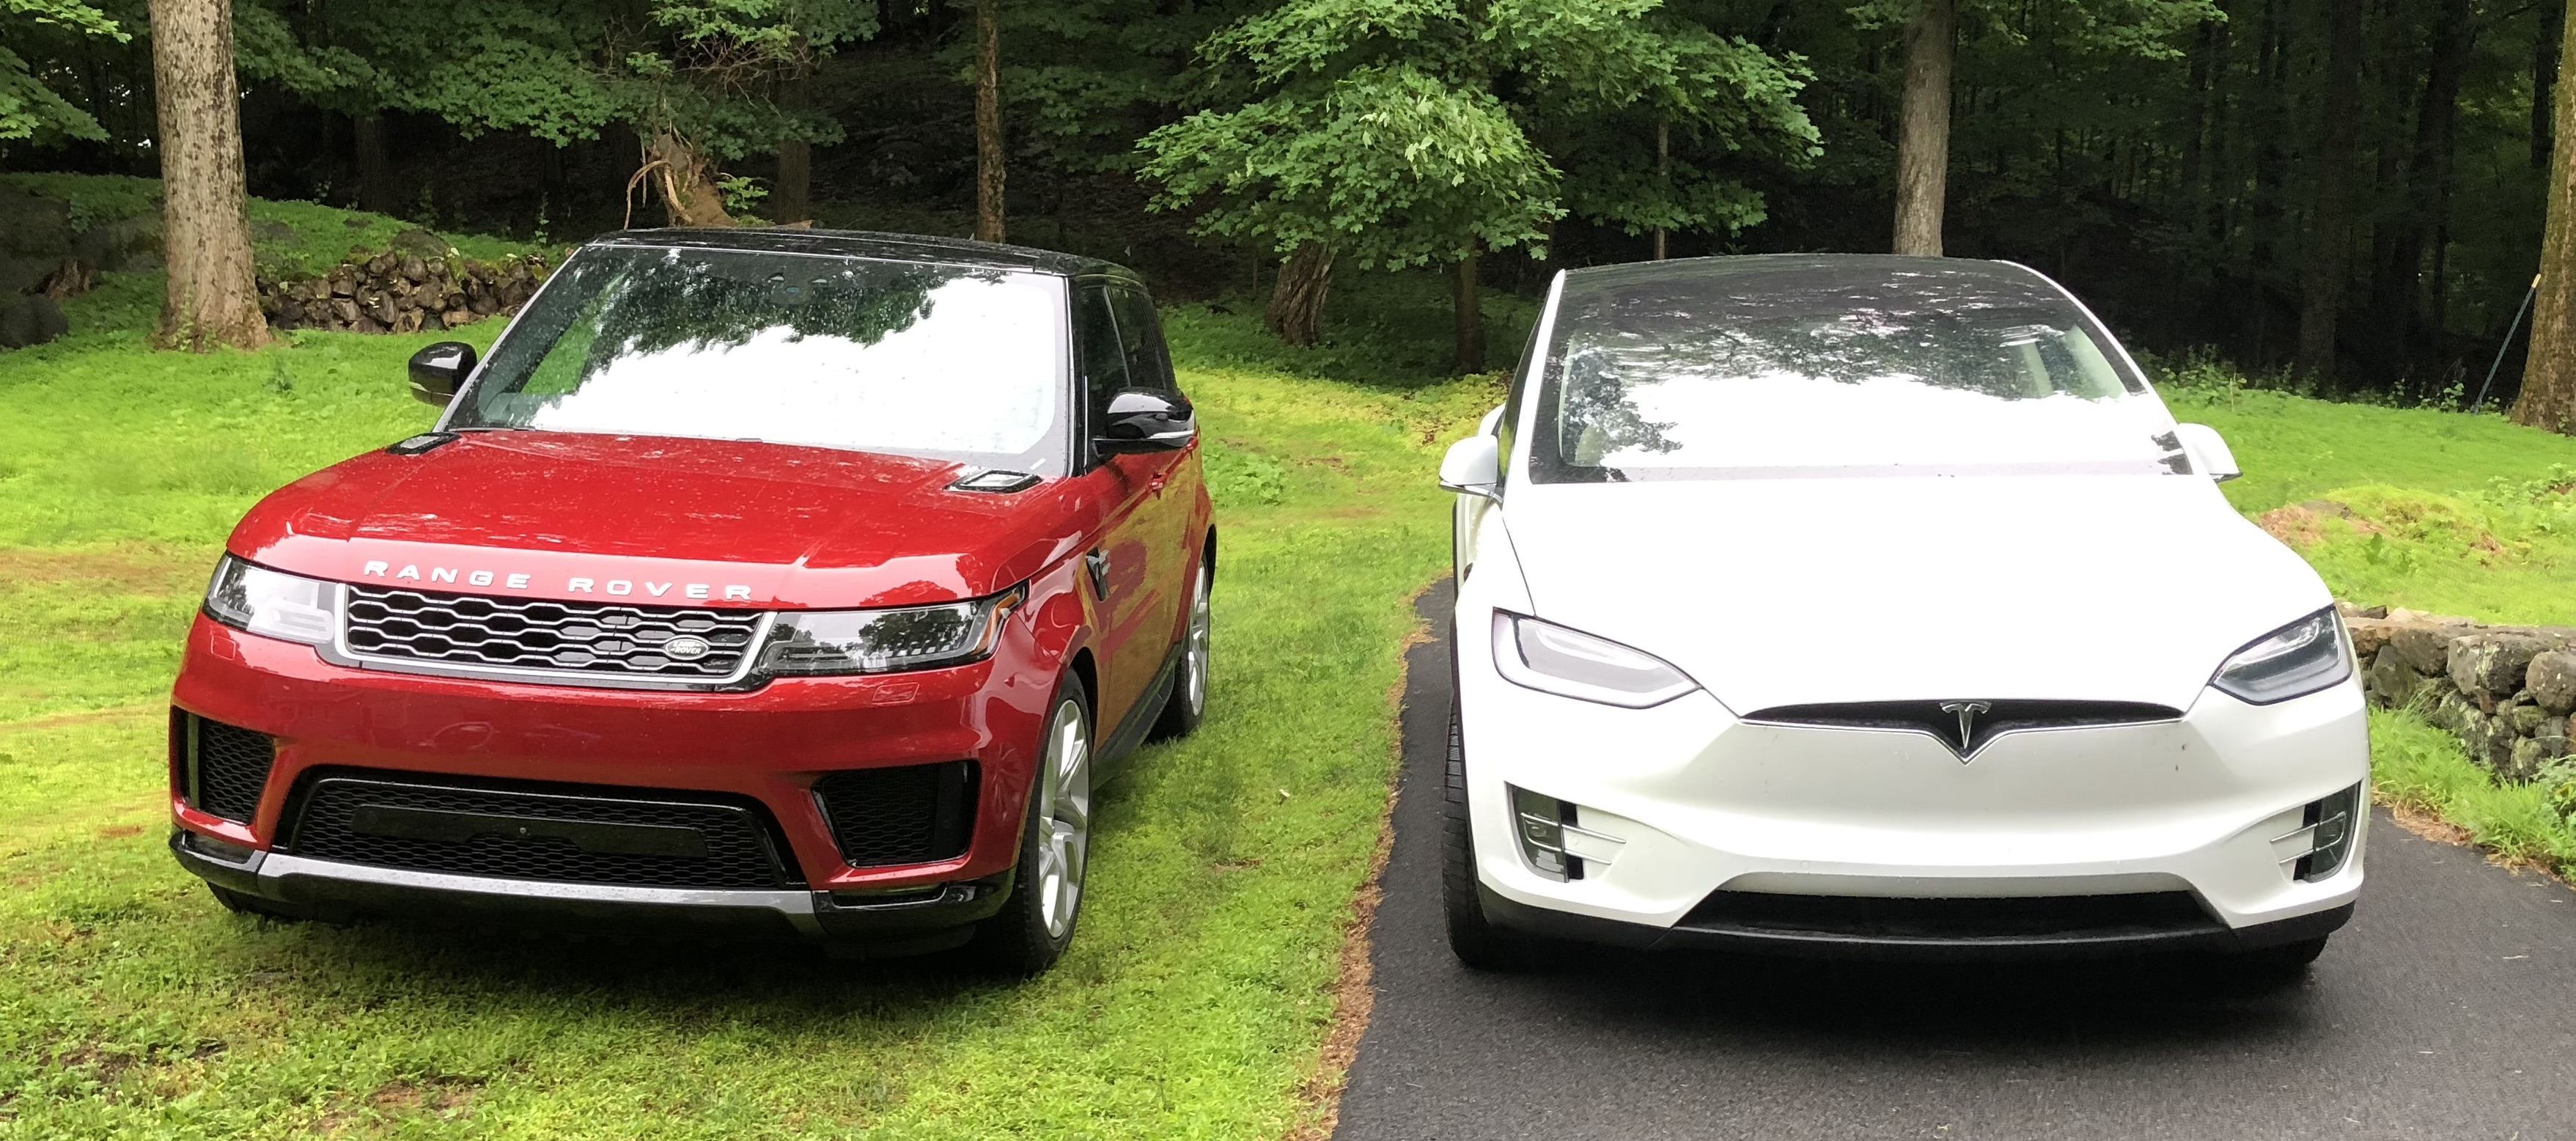 Range Rover Sport PHEV next to Tesla Model X